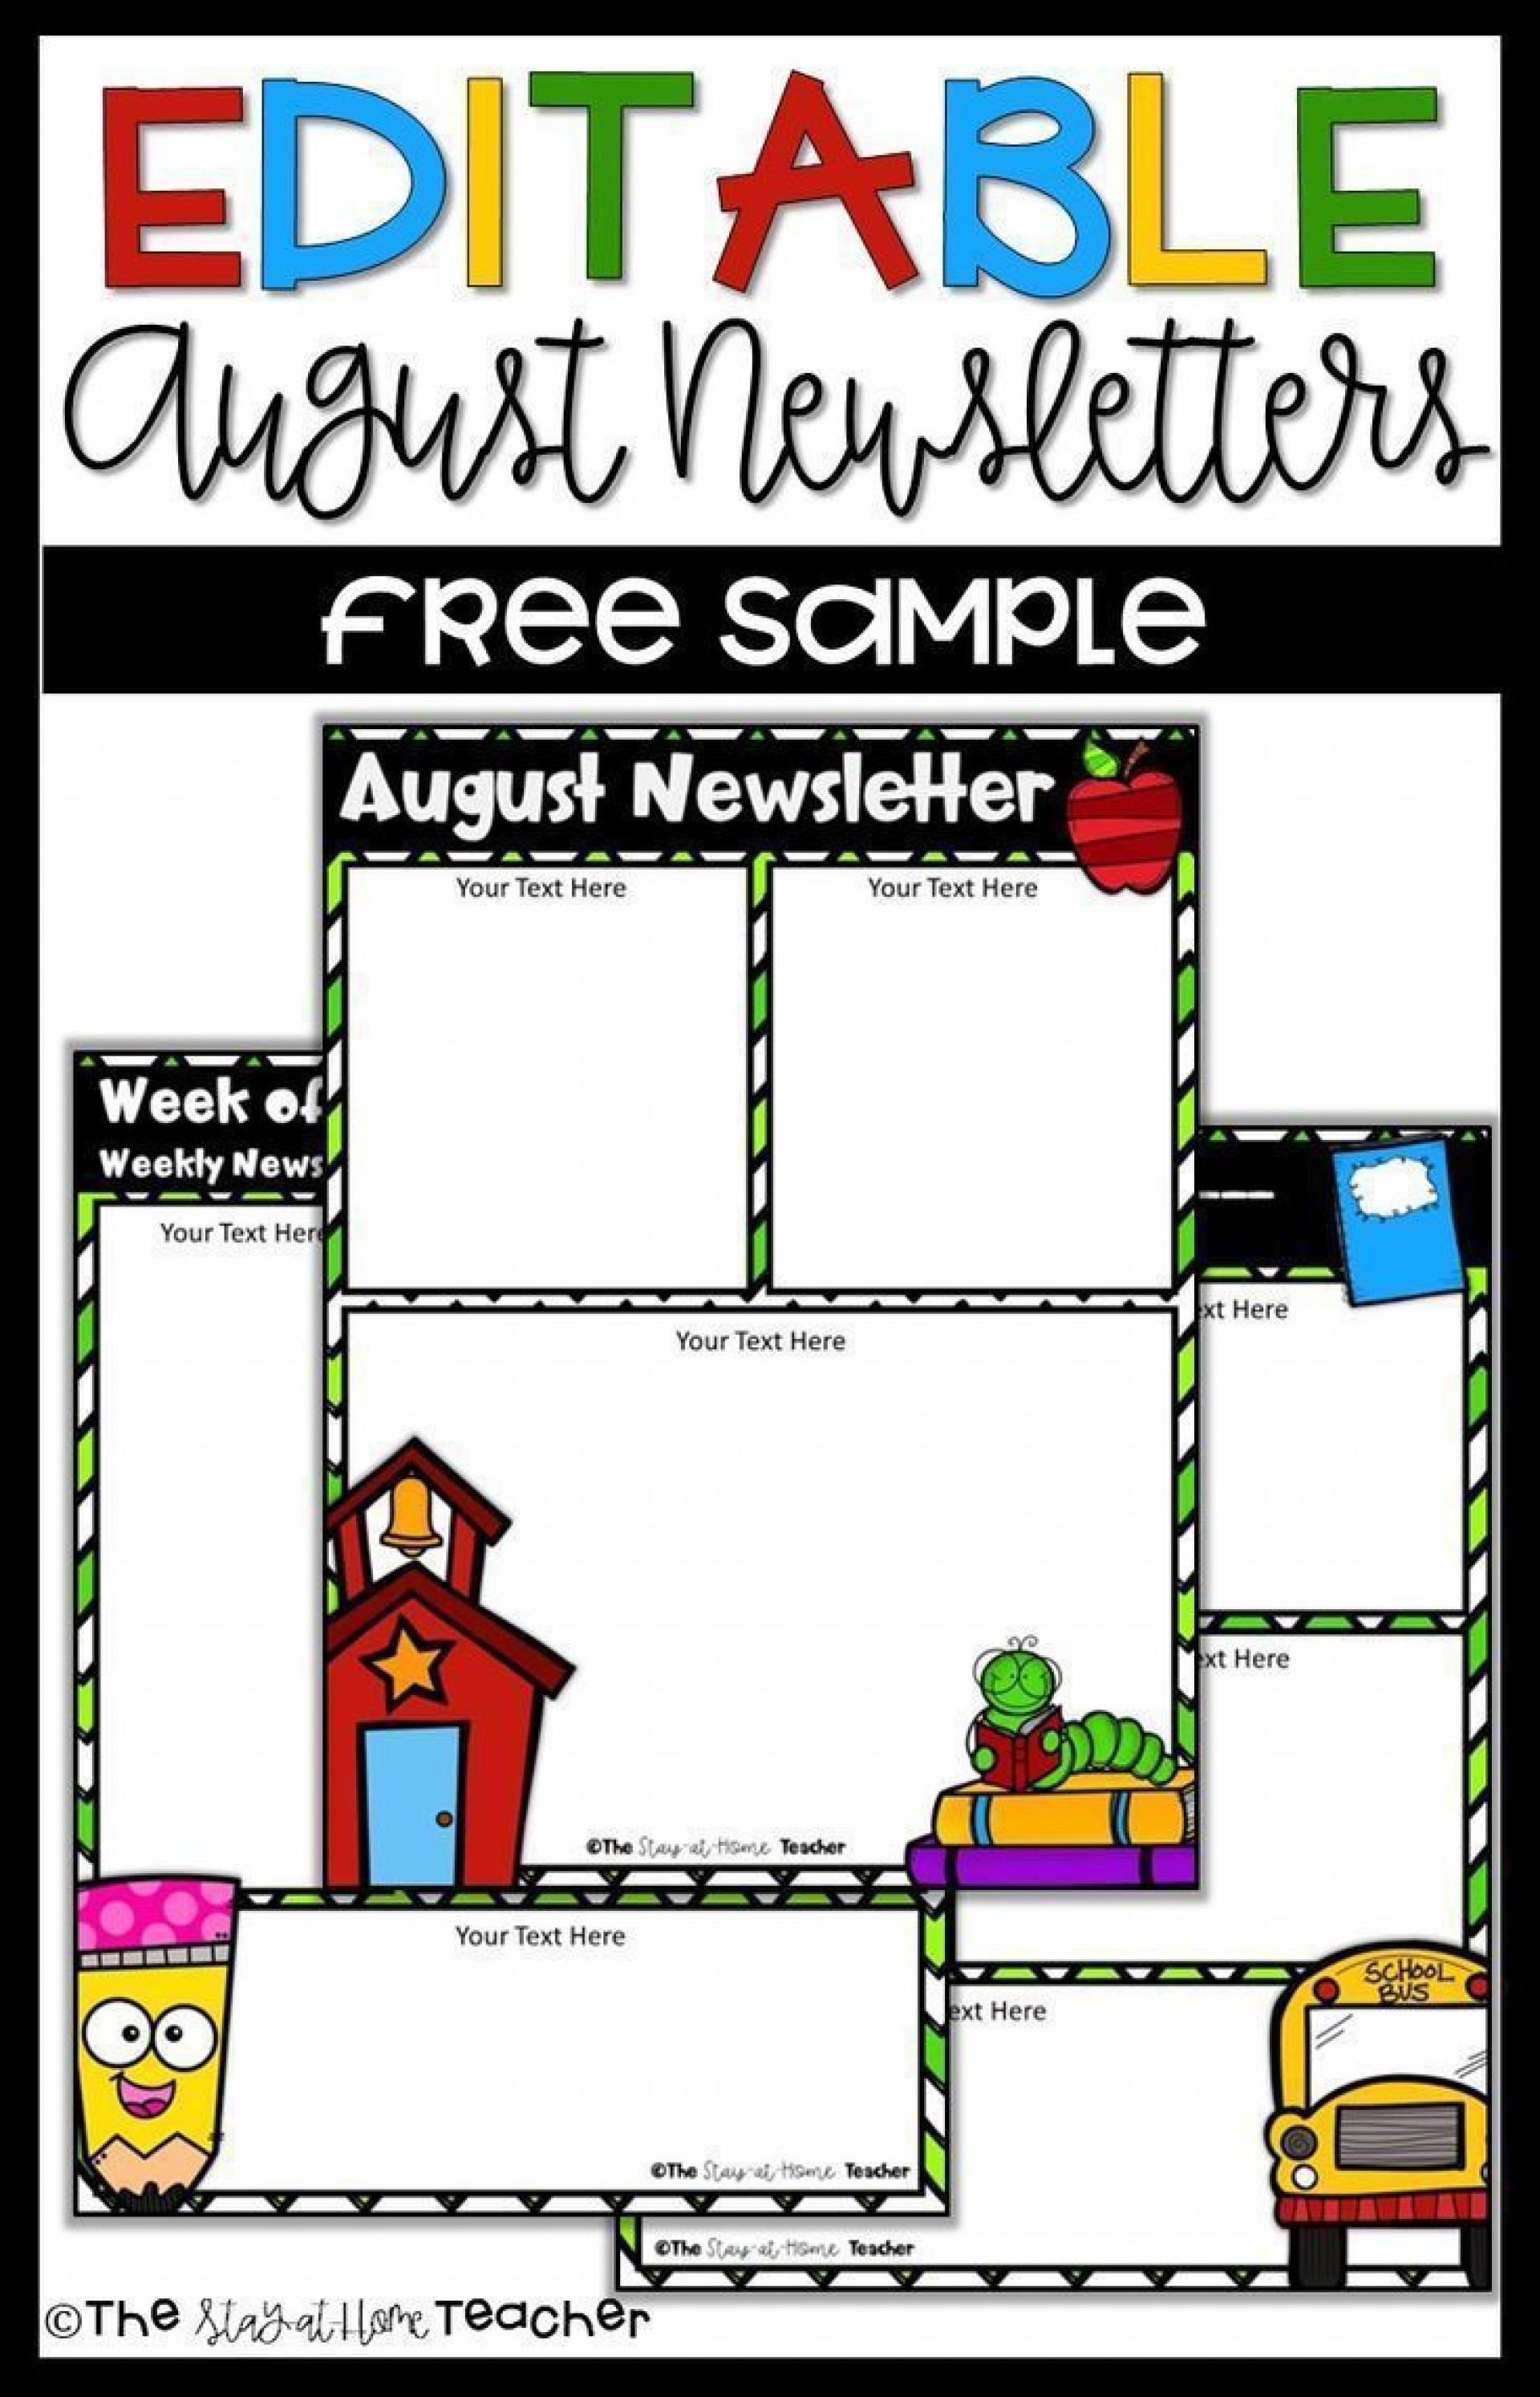 002 Formidable Weekly Newsletter Template For Teacher Free Picture 1920